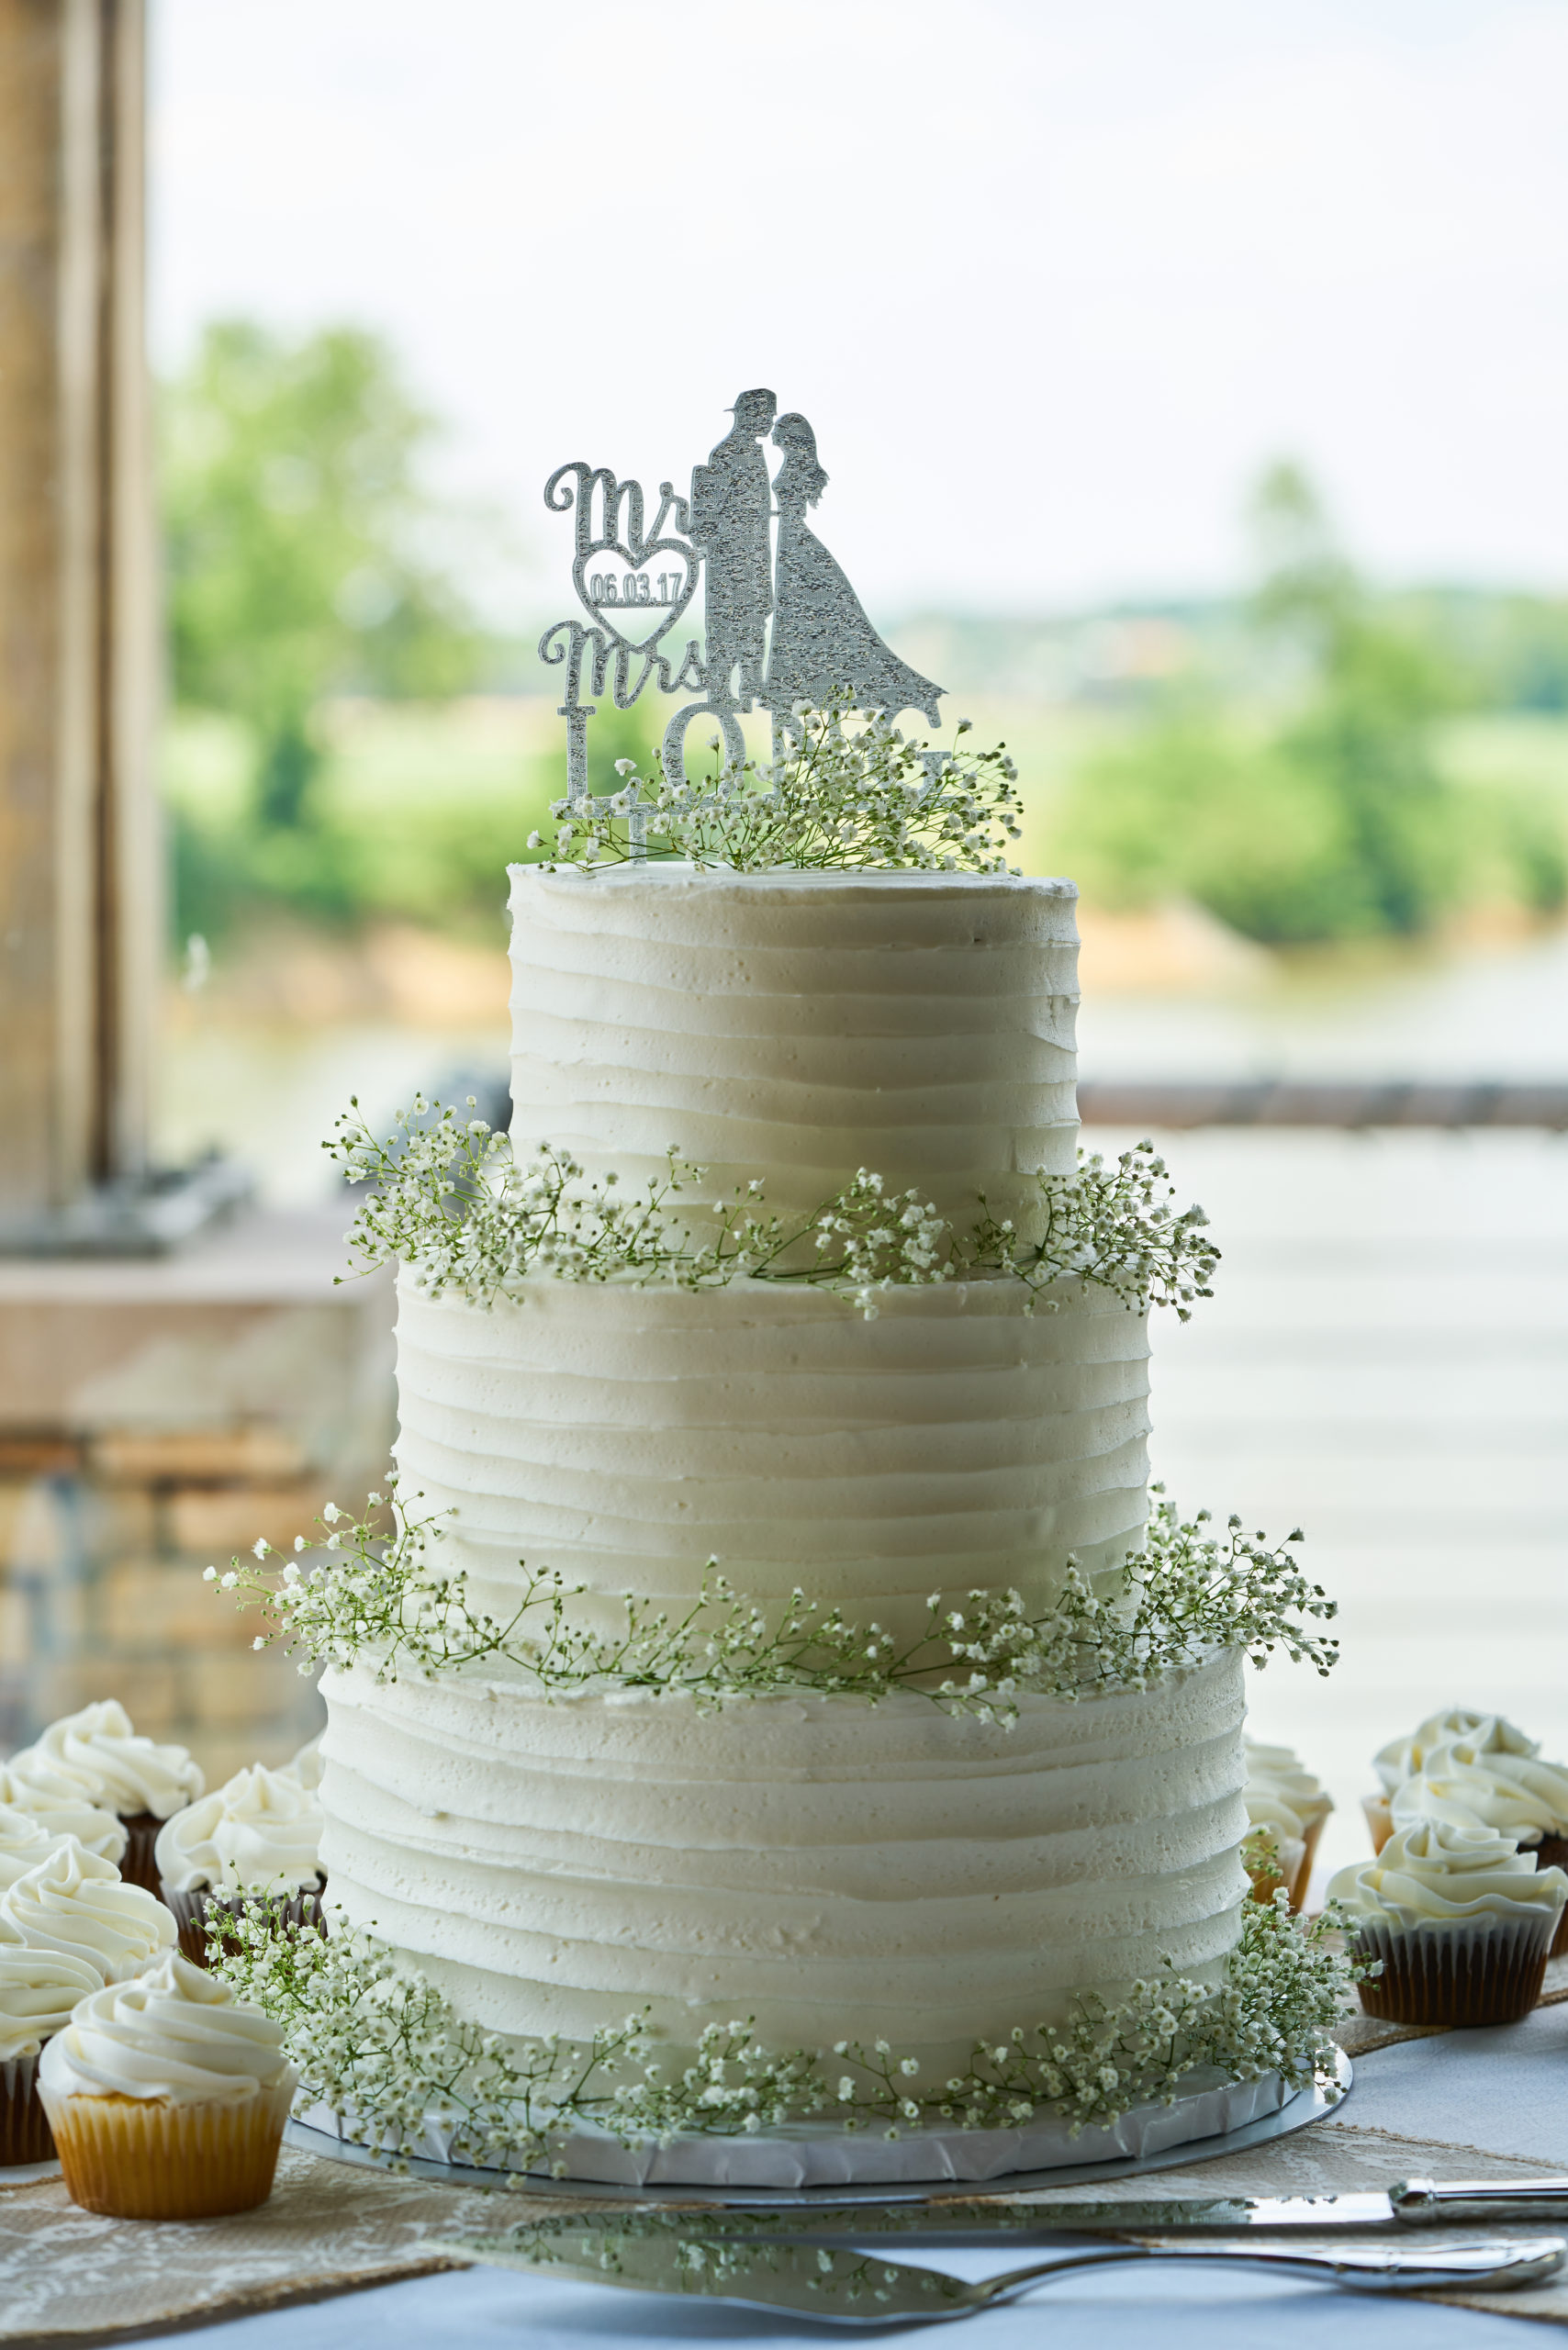 Too Sweet Wedding Cakes And More